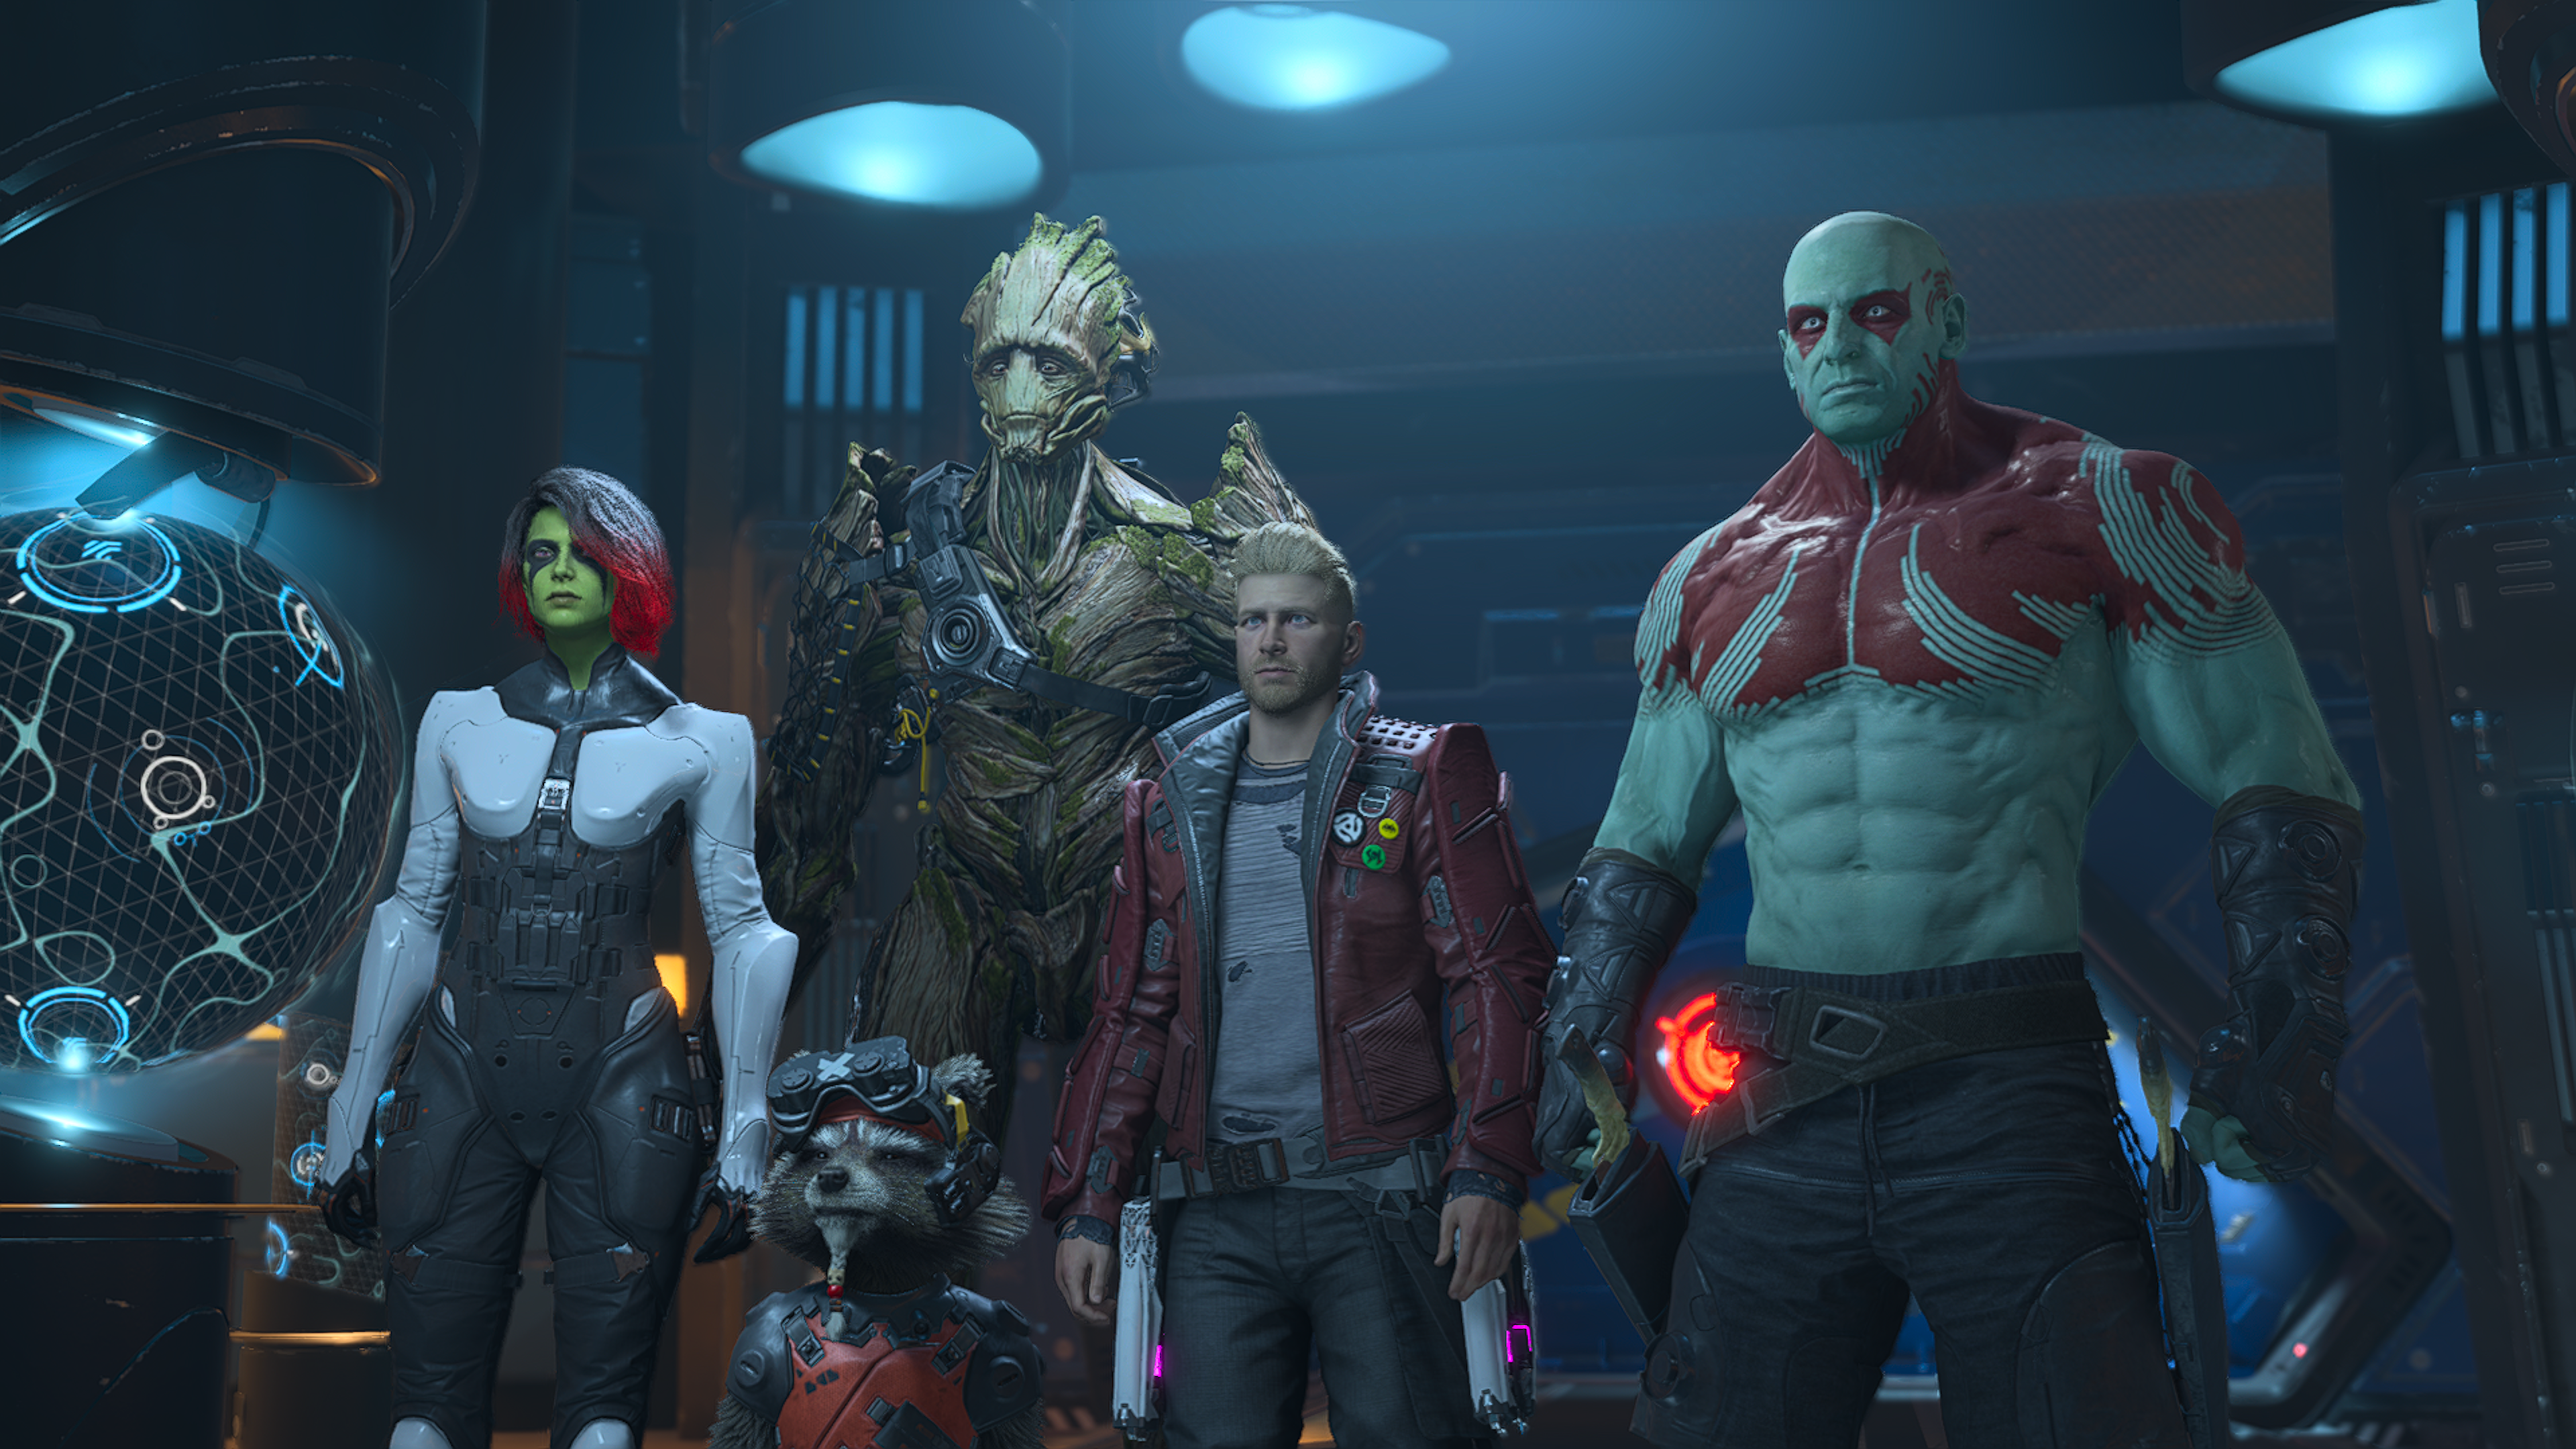 Marvel's Guardians of the Galaxy standing together